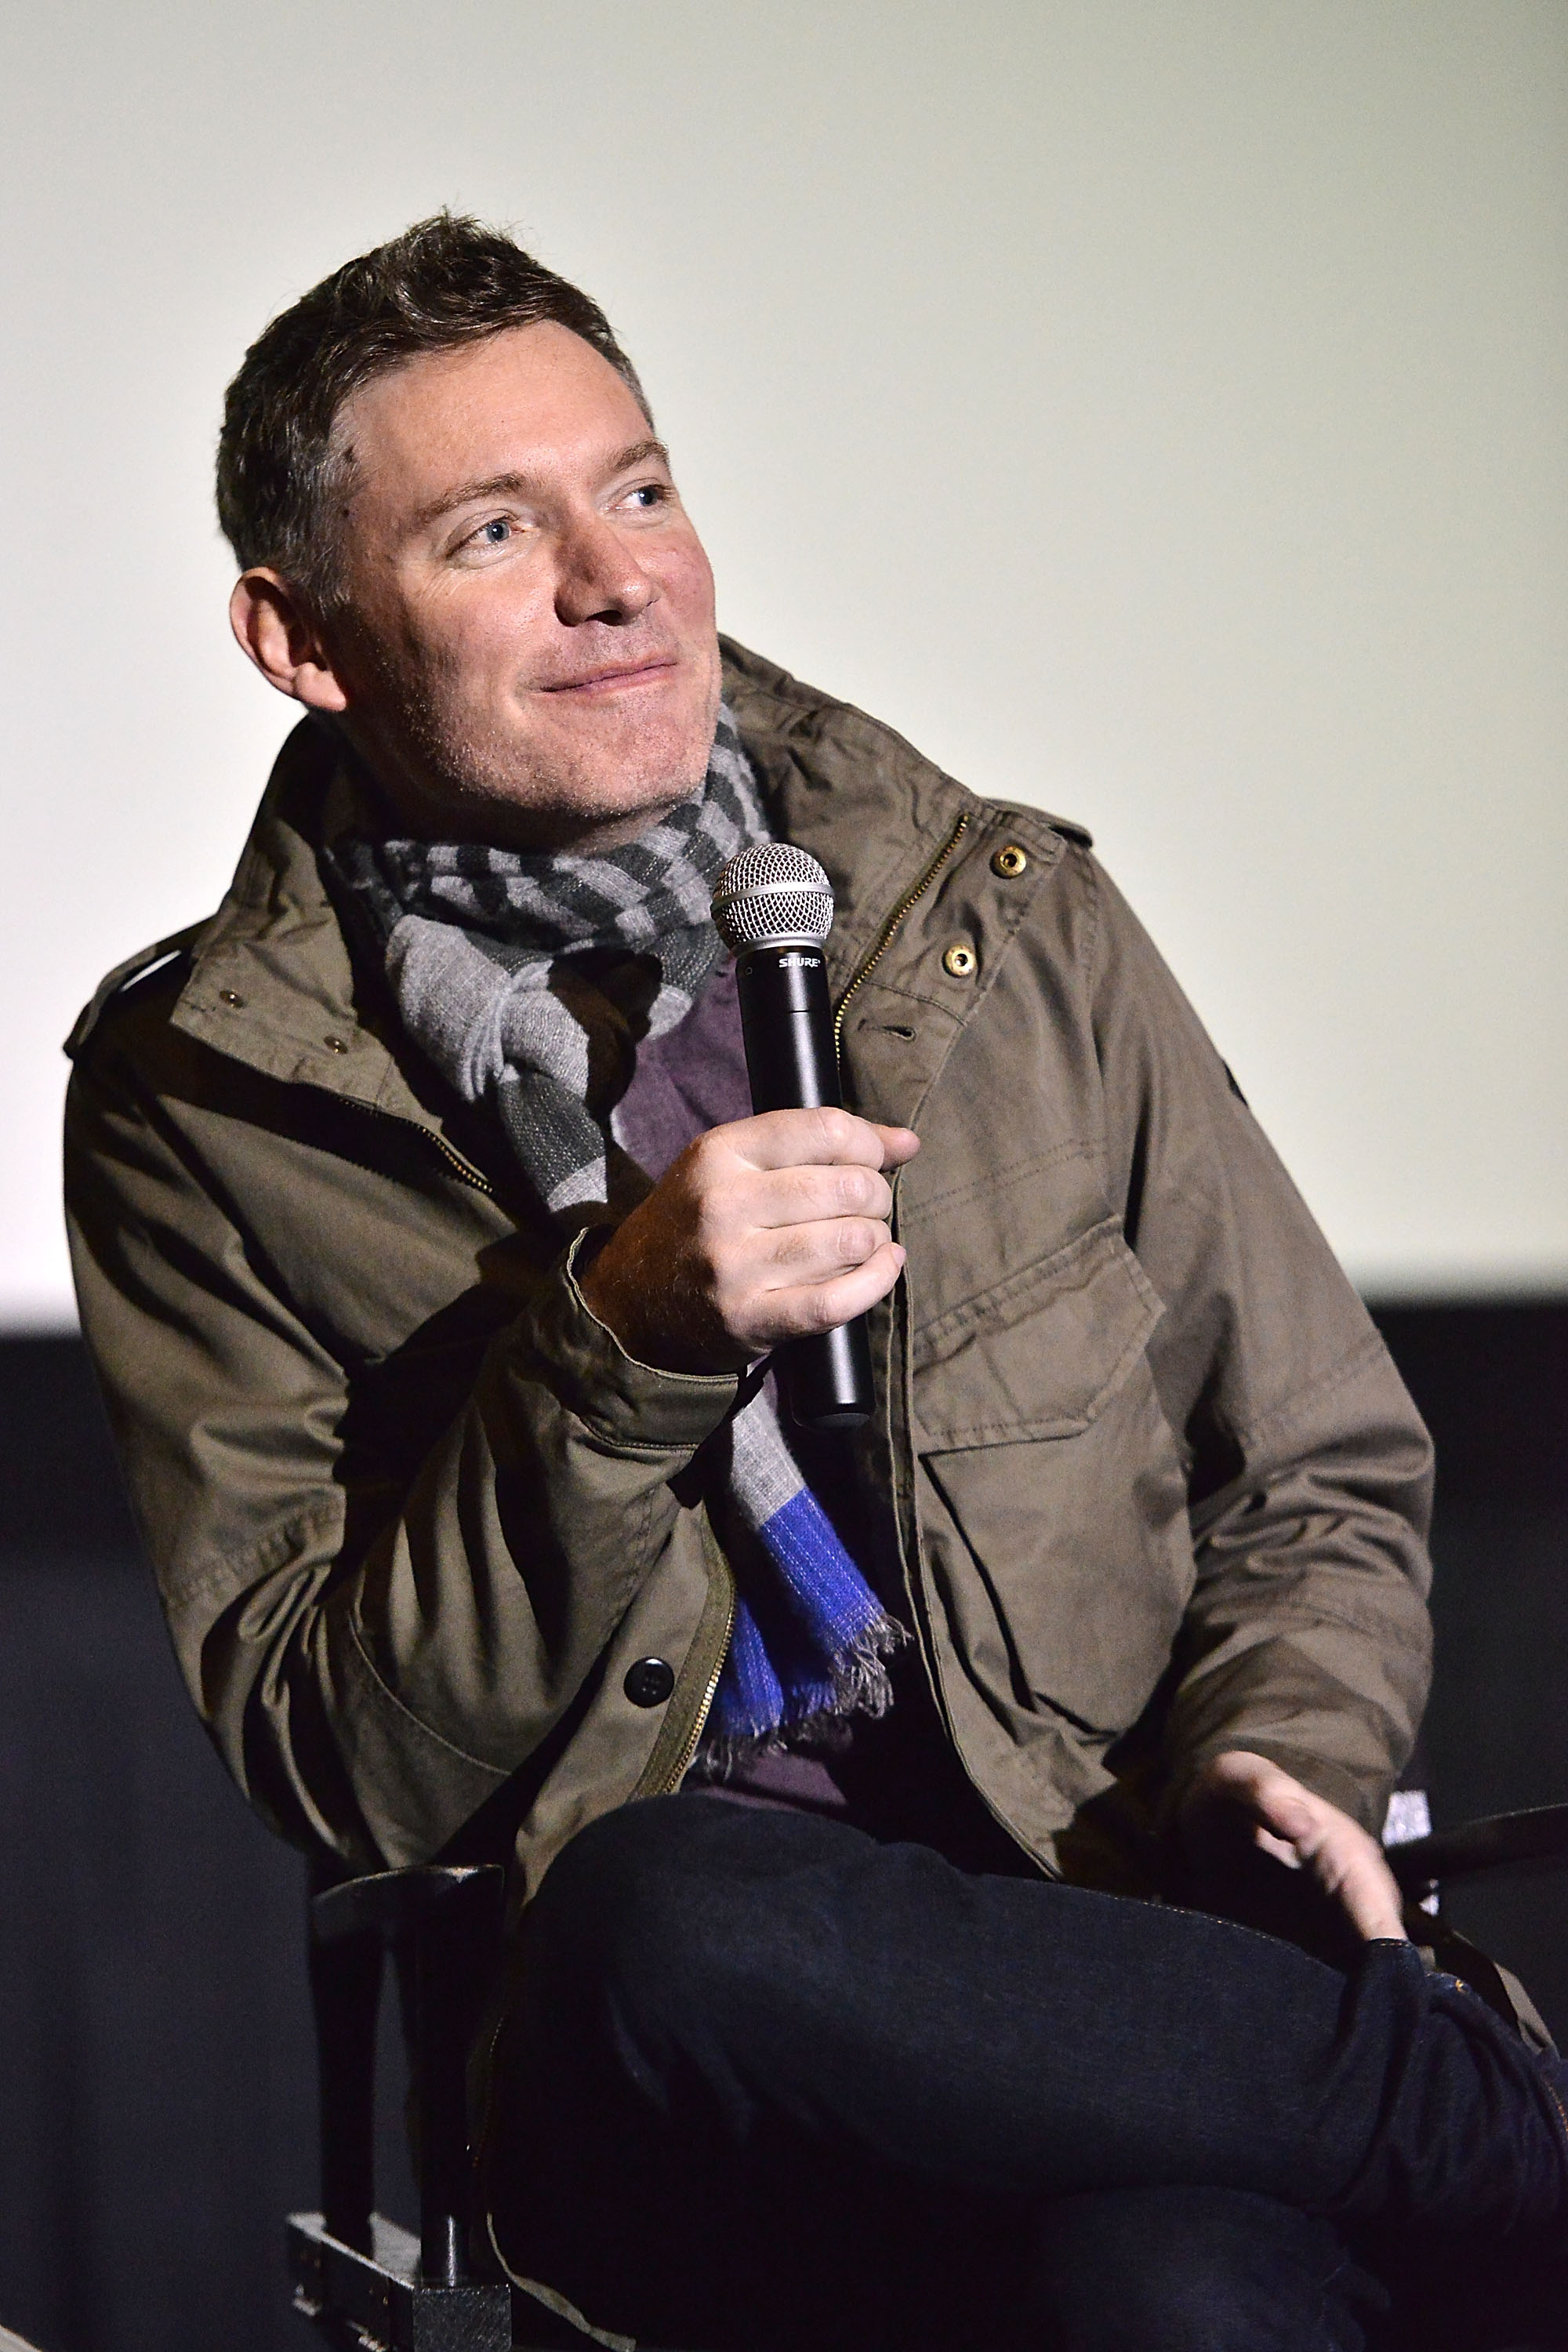 Kevin Macdonald attends the Film Independent screening of  Black Sea  on December 2, 2014 in Hollywood, California.